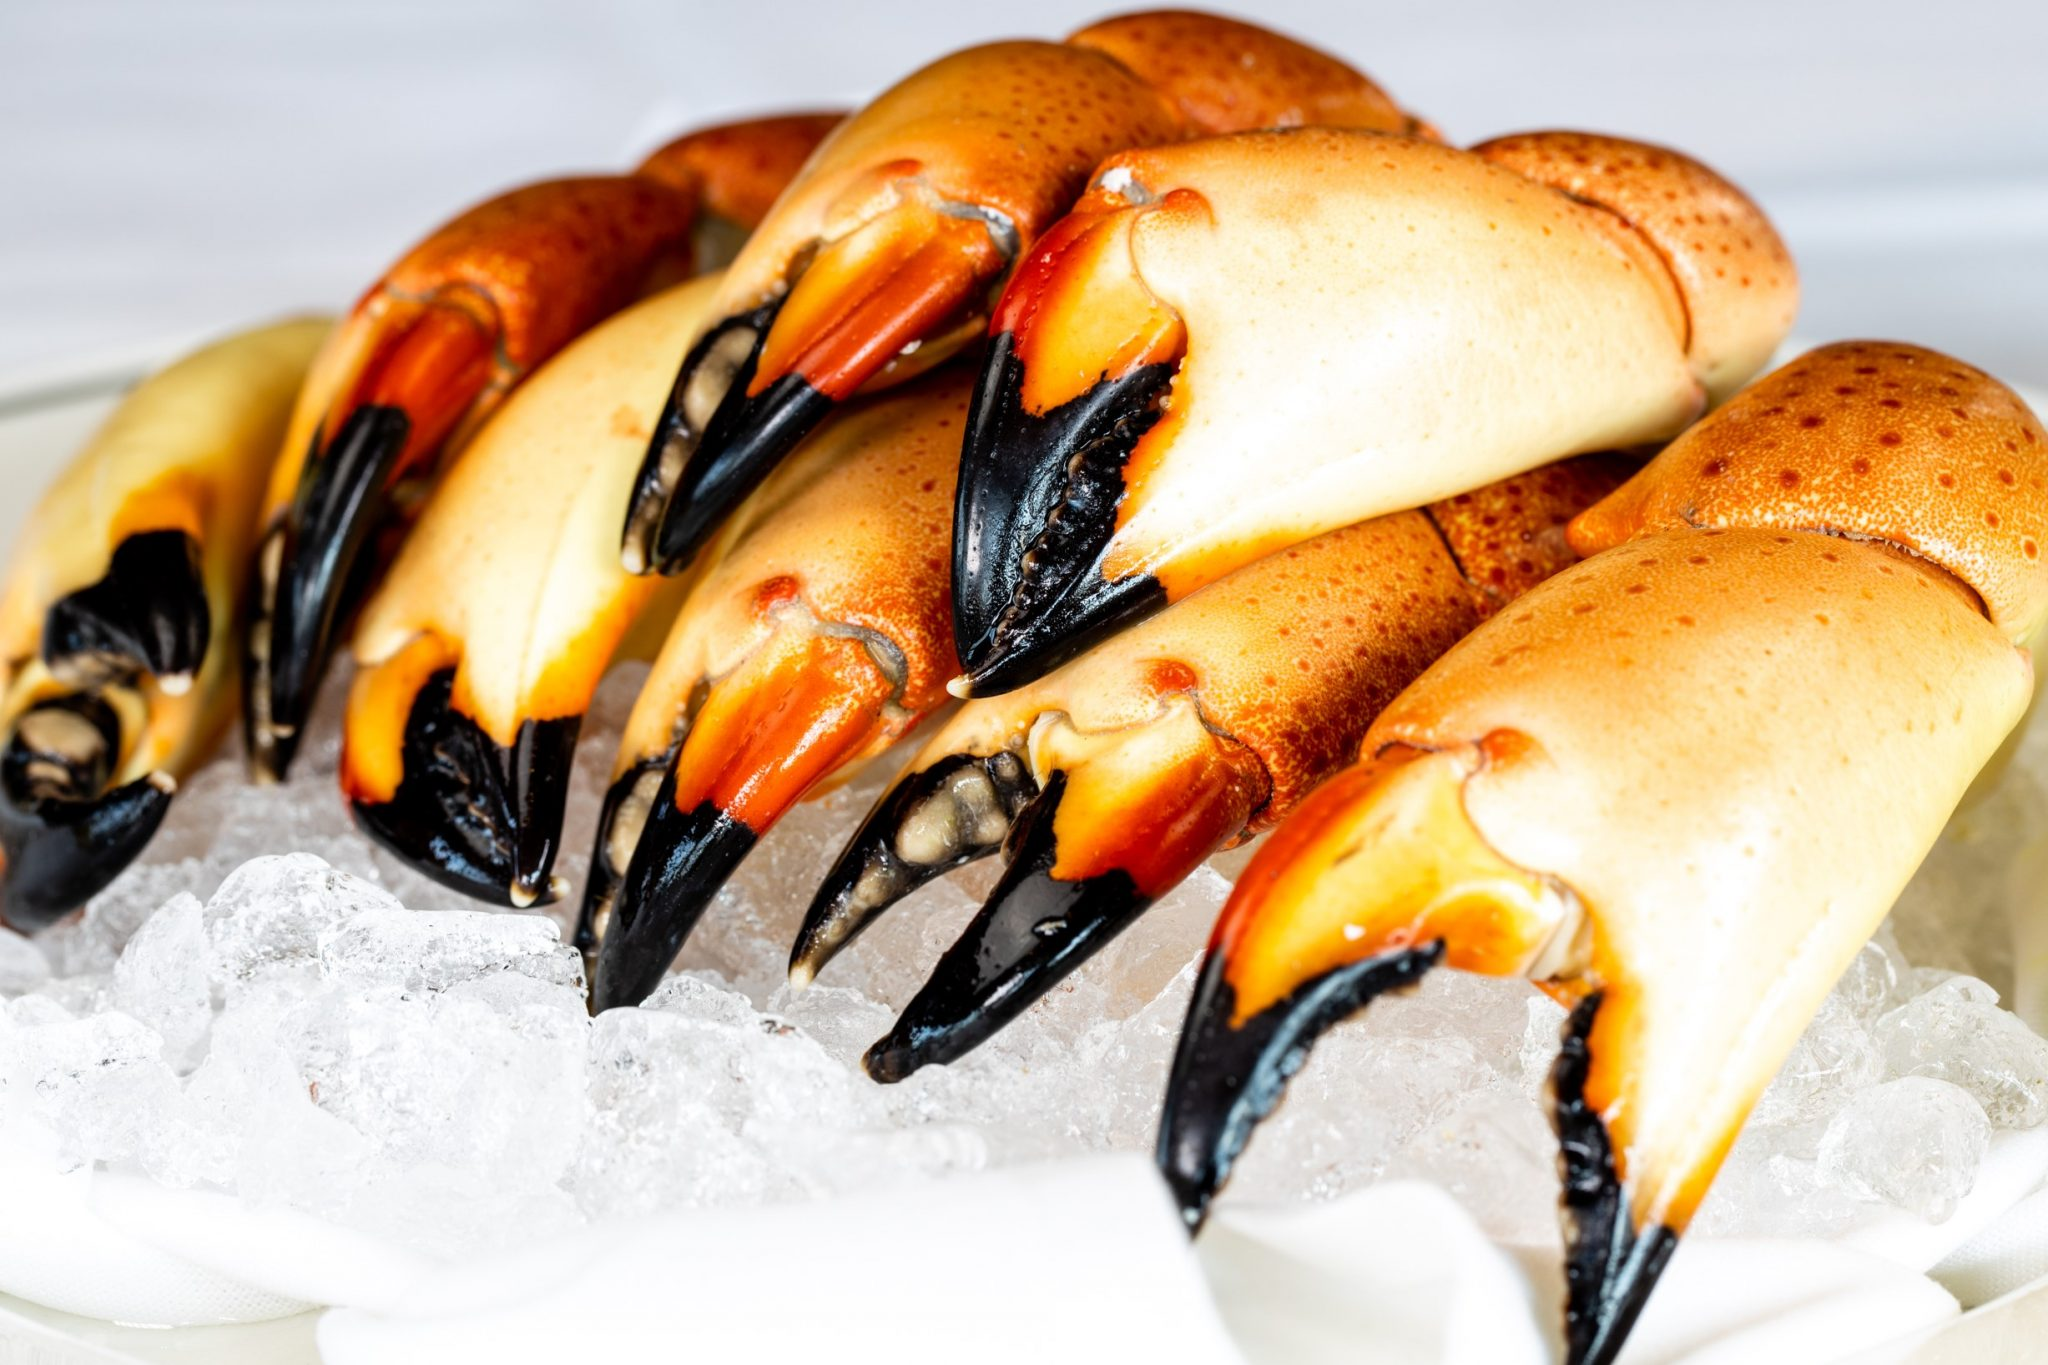 picture of Florida stone crab claws on a bed of ice